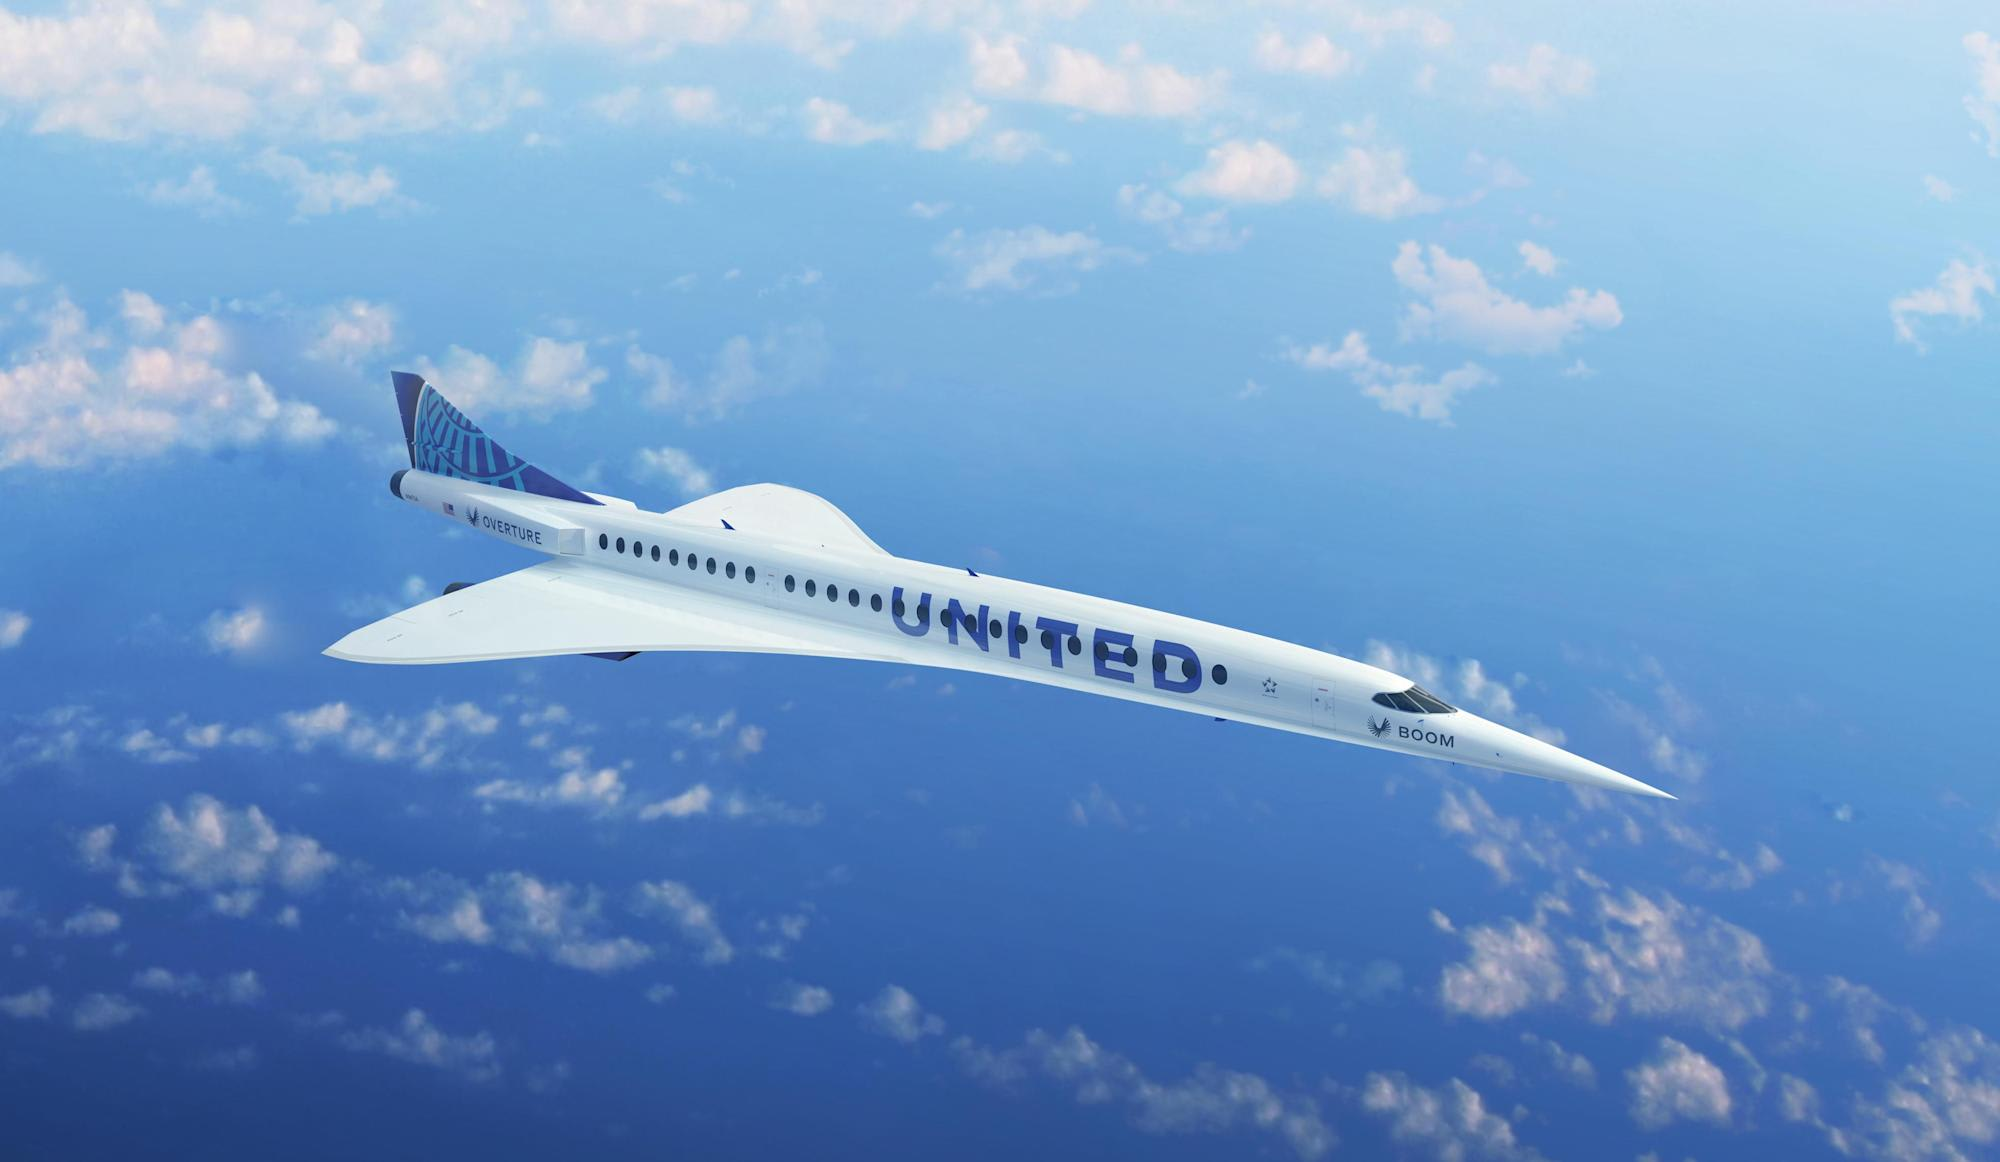 United Airlines agrees to purchase 15 Boom supersonic airliners